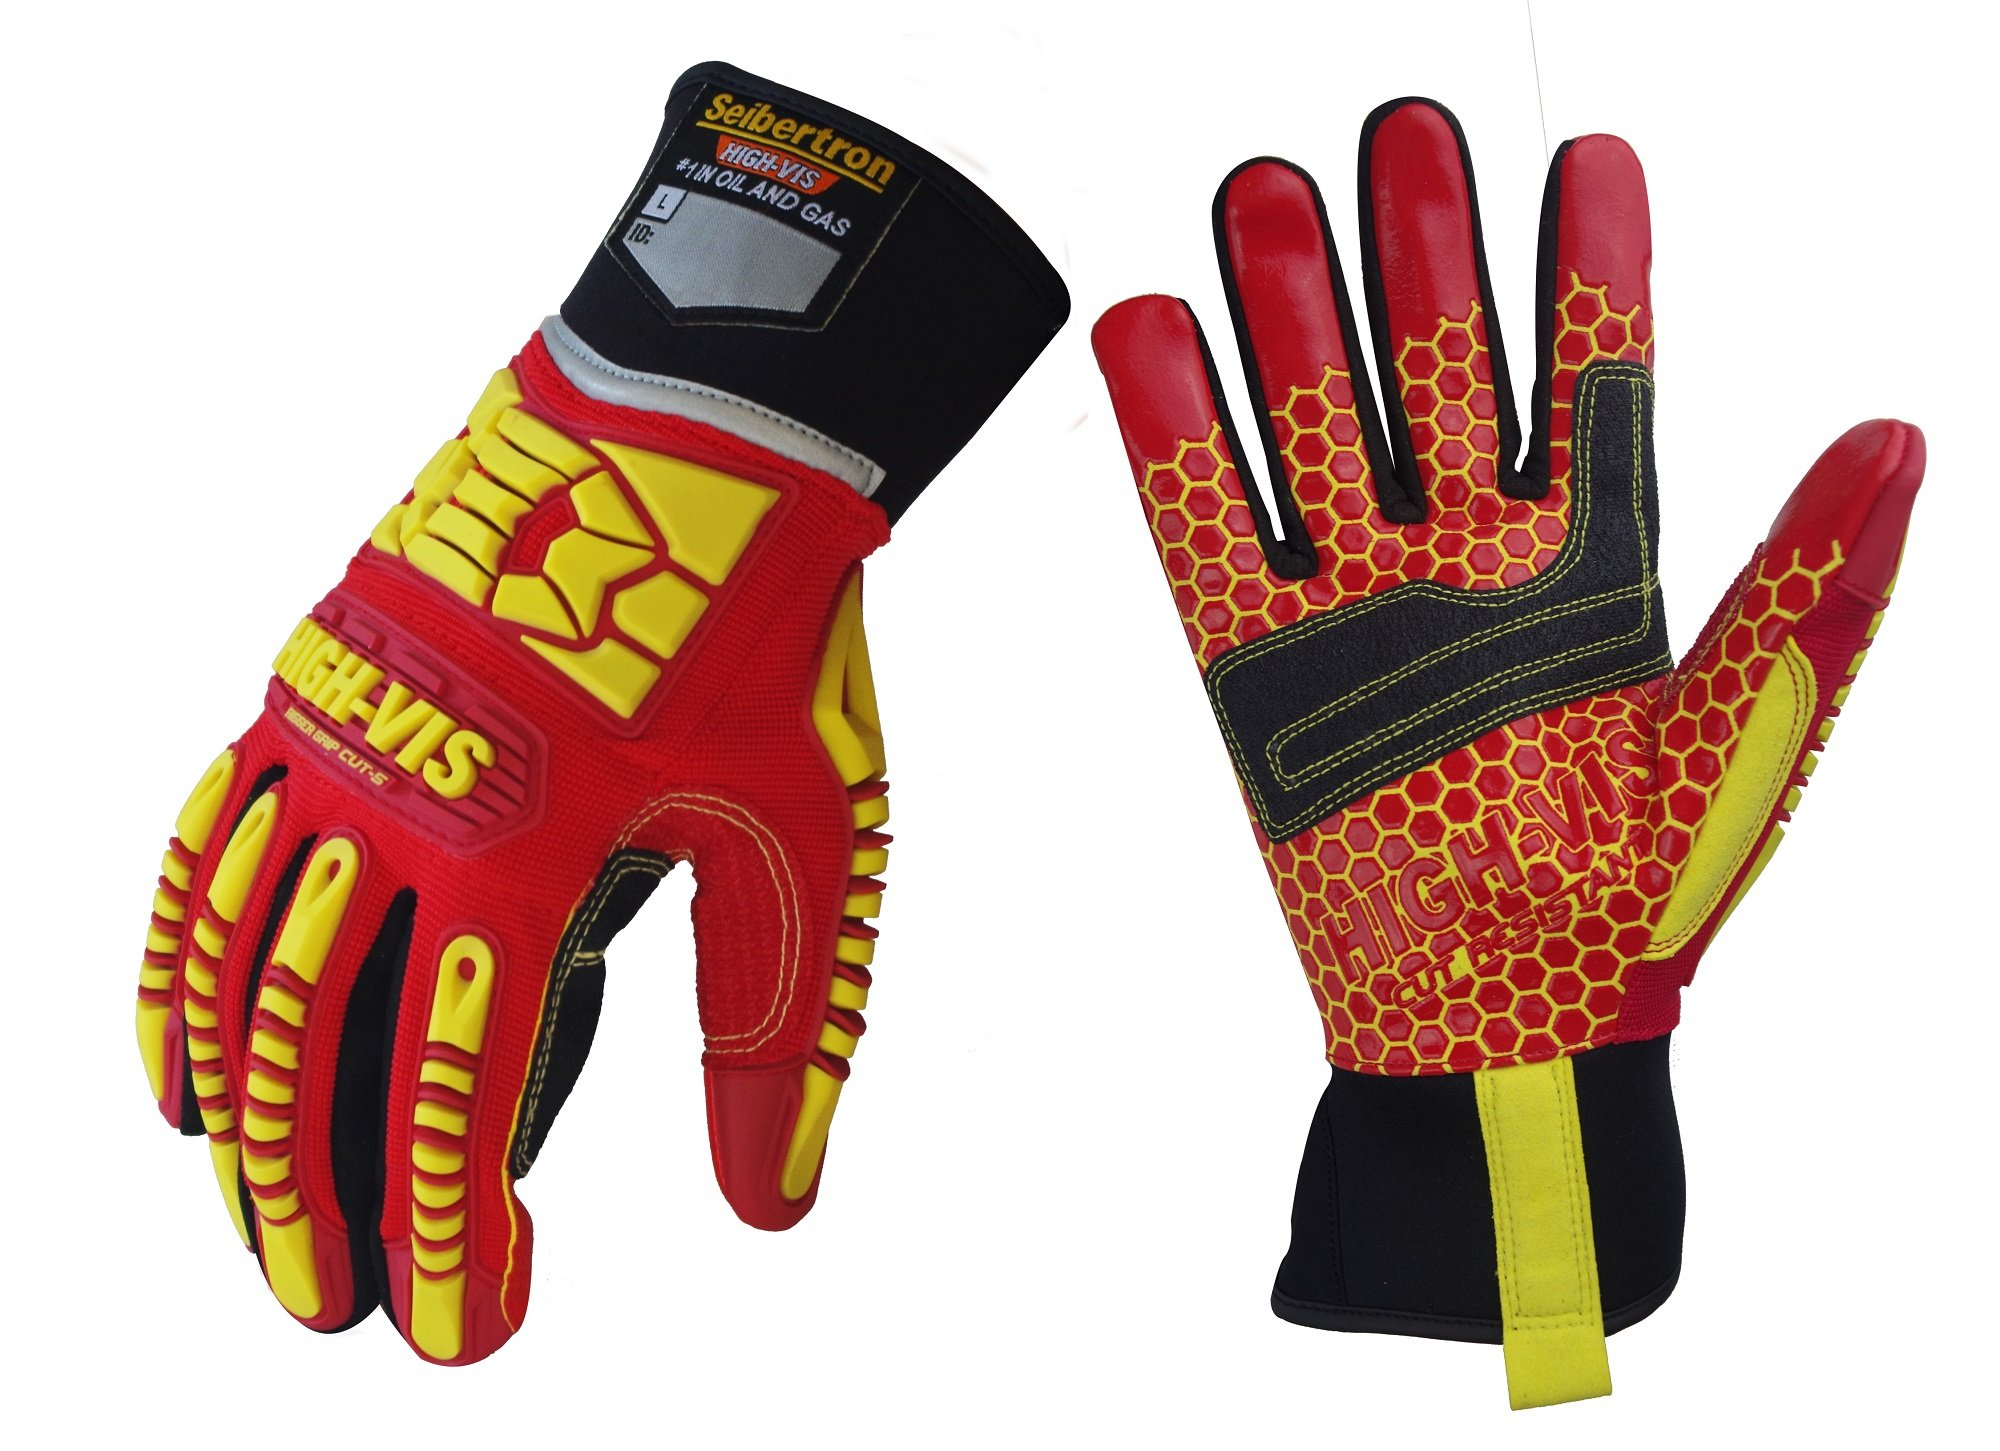 Seibertron HIGH-VIS HRC5 Rigger Excellent Grip Cut5 Handyman/Box Handler Gloves Abrasion Resistant Oil & Gas Drilling Safety Impact Protection Gloves CE EN388 3541 L